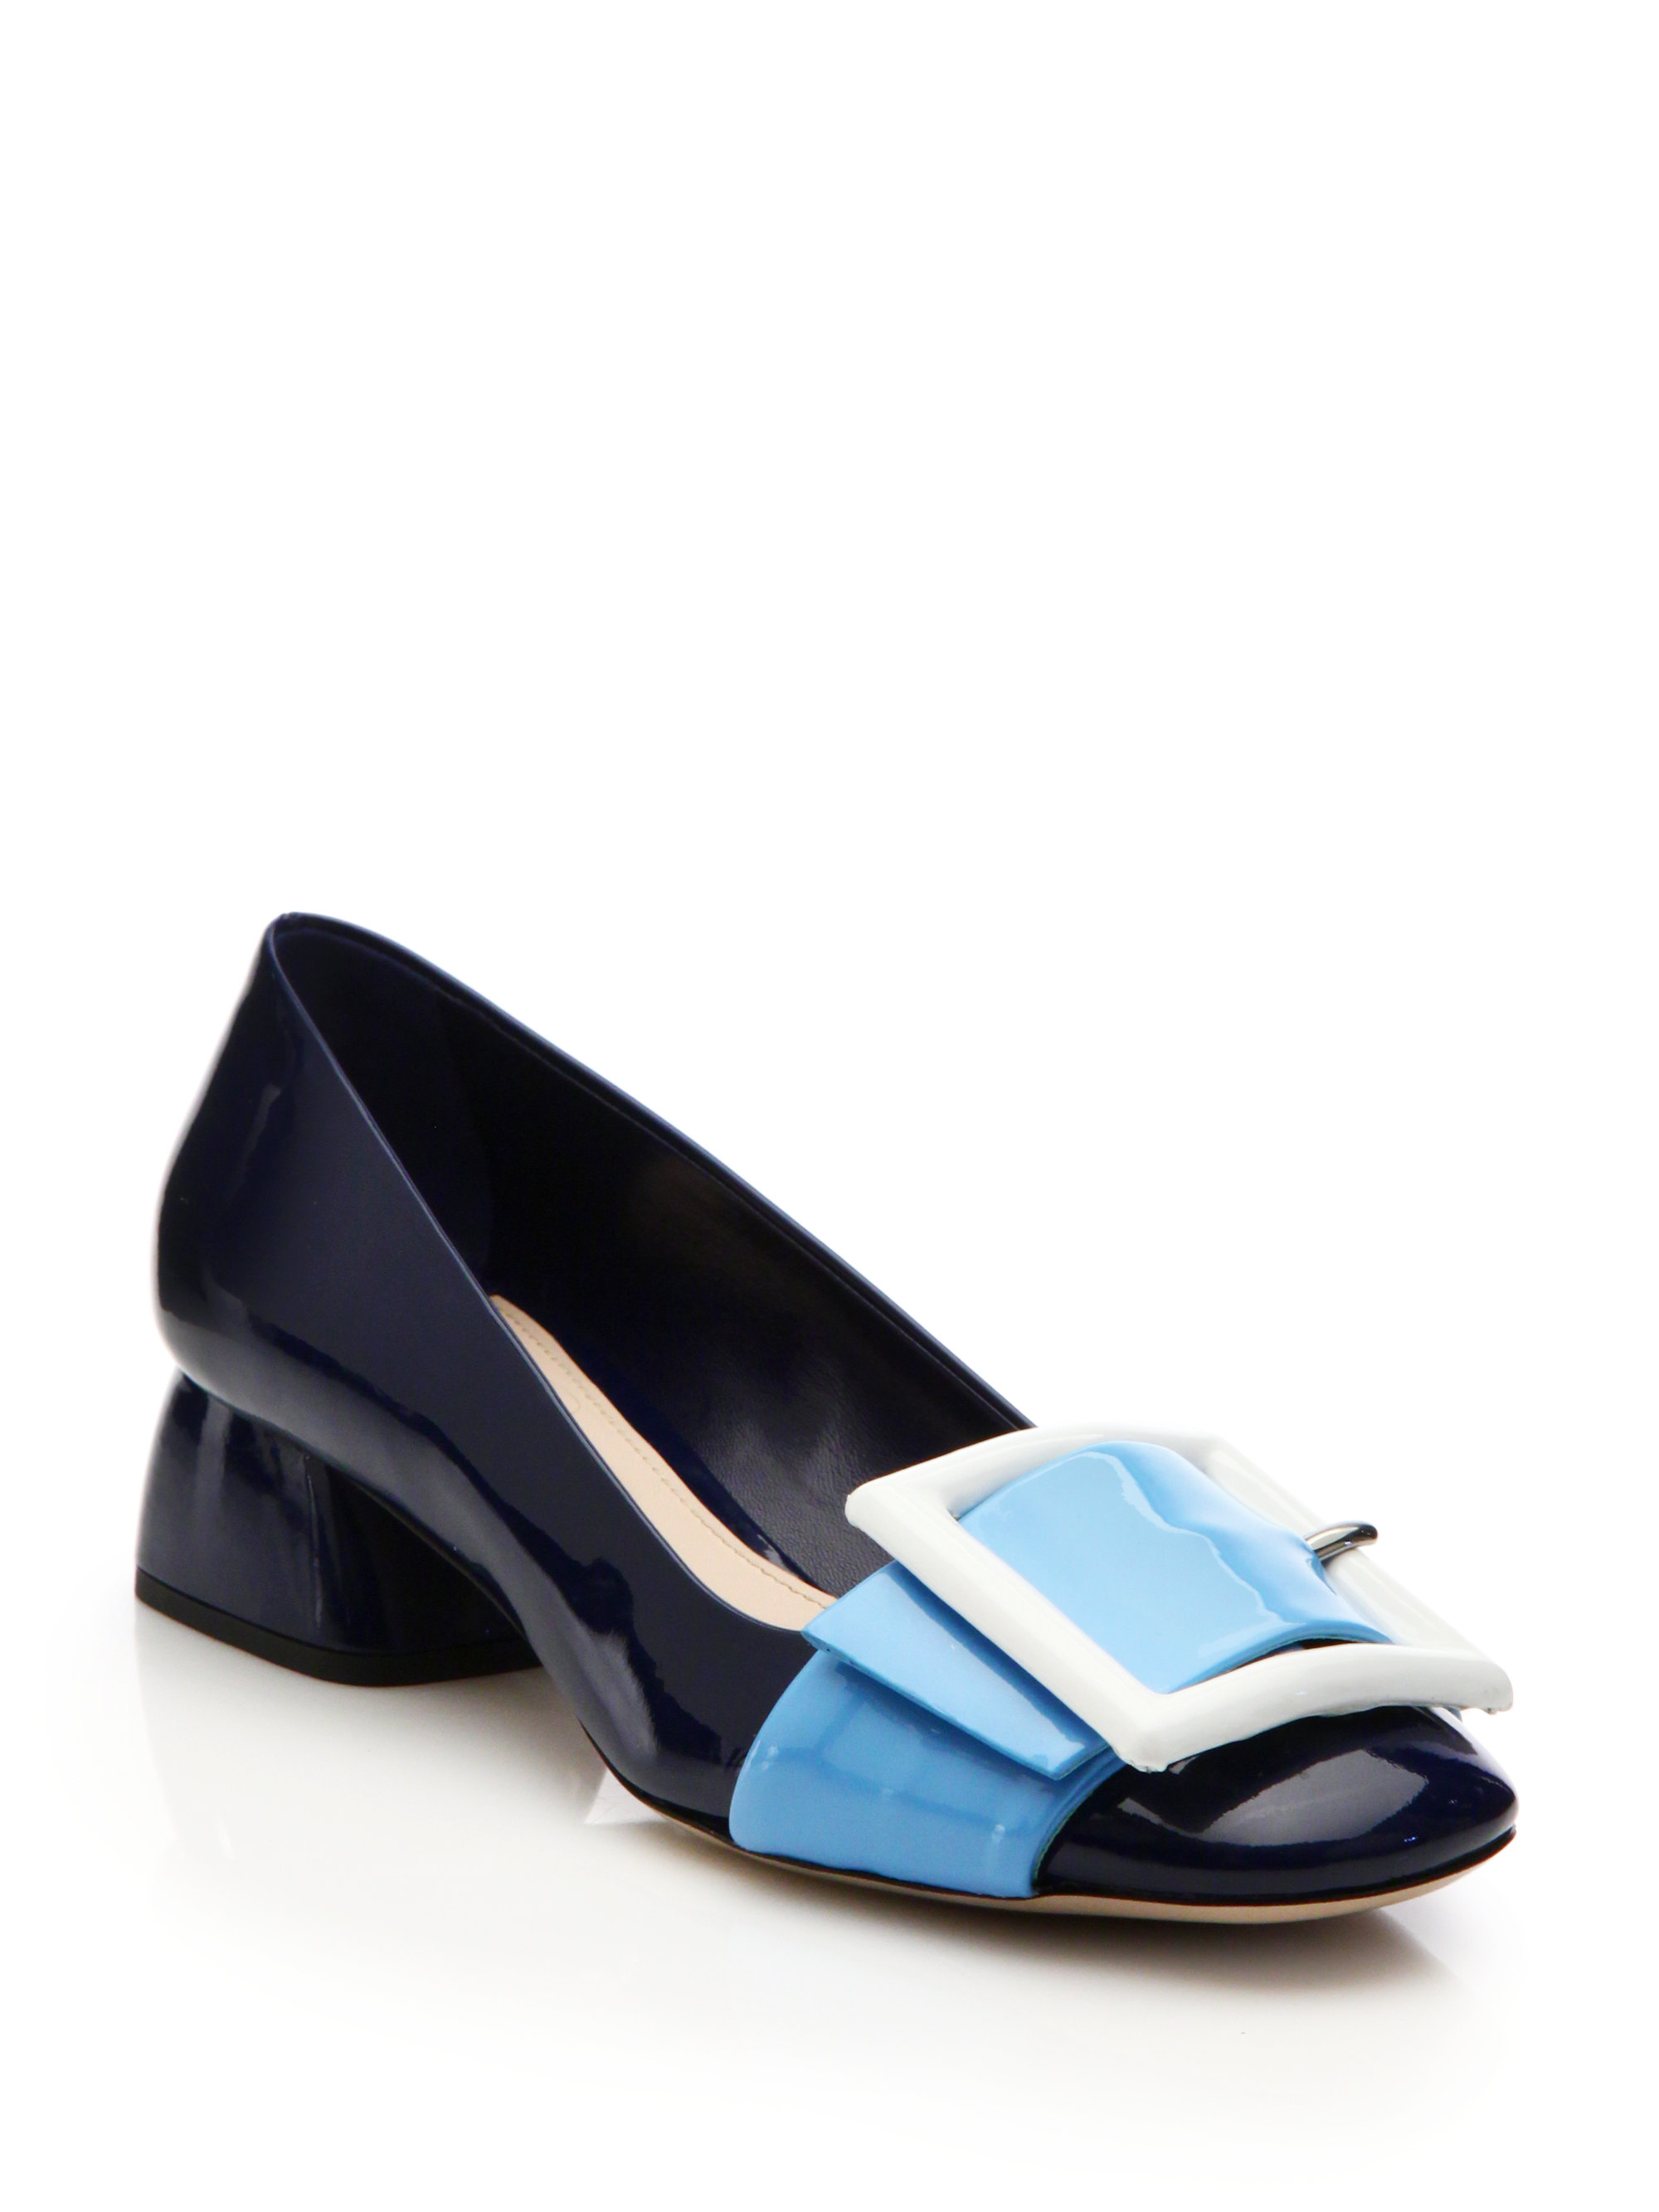 Lyst - Miu Miu Buckle-embellished Patent Leather Pumps in Blue a5664e47e8ff